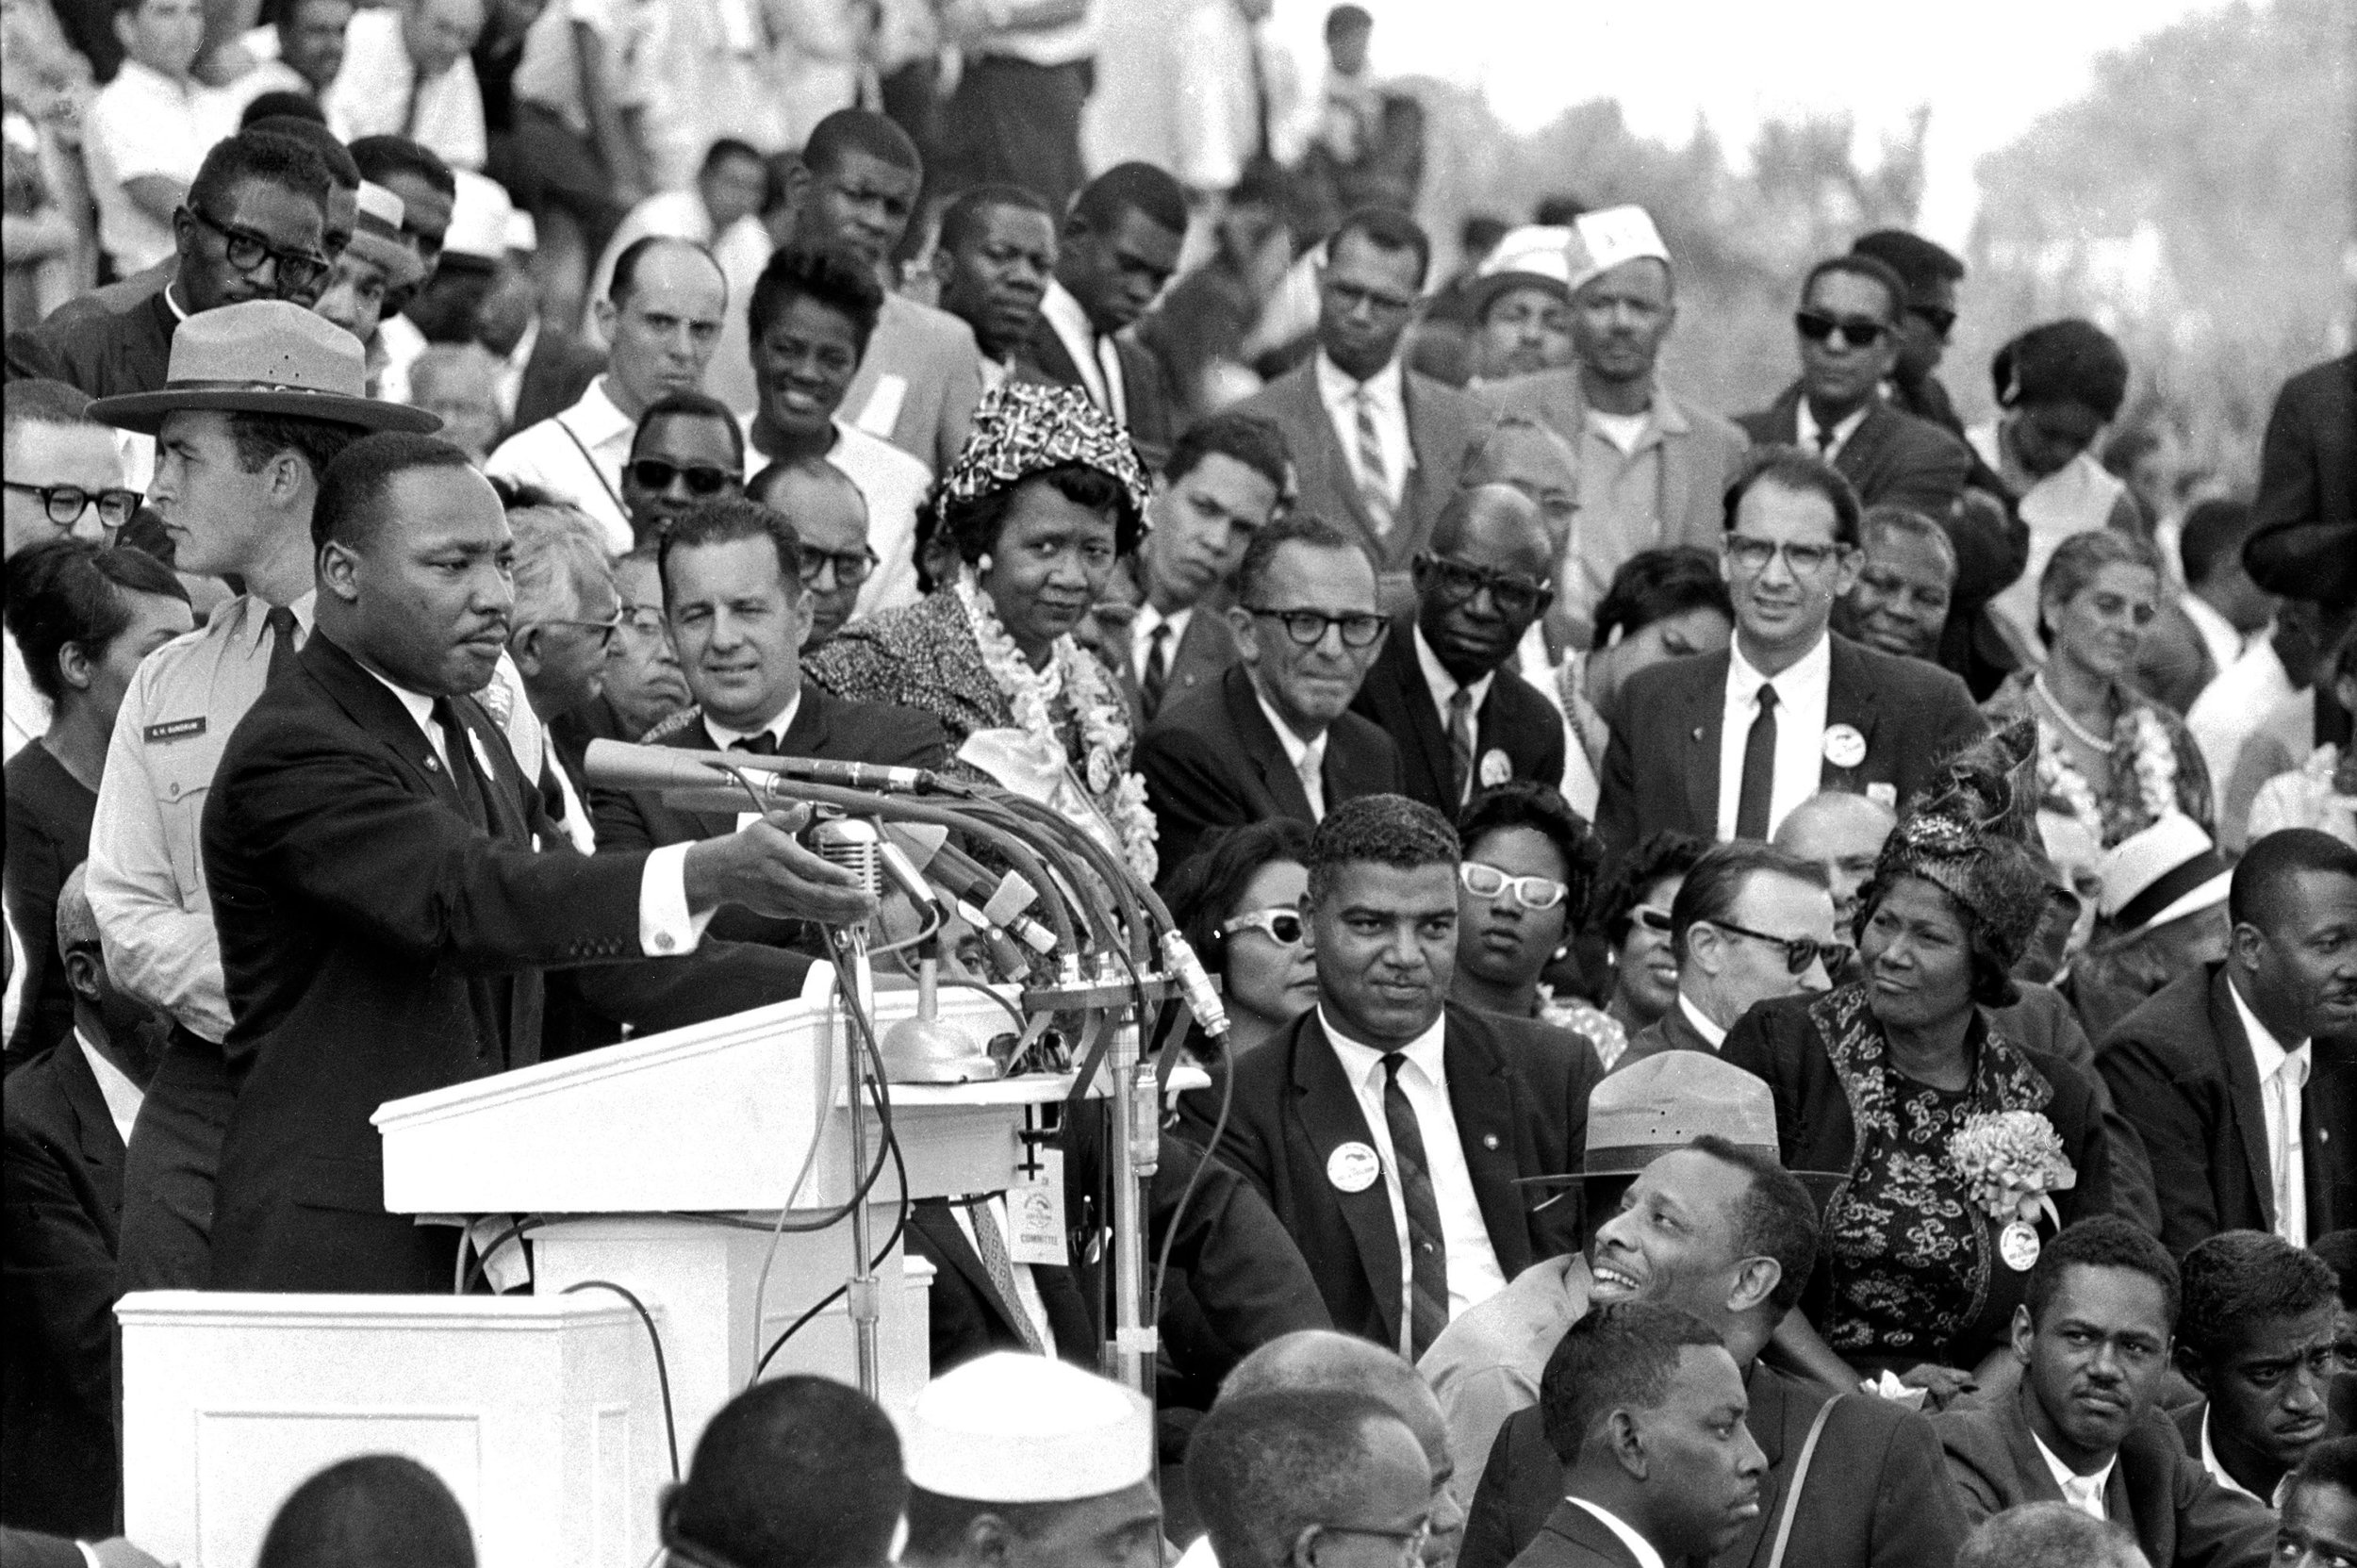 """PAGE 73:DR. MARTIN LUTHER KING, JR. BECAME AN INTERNATIONAL LEADER FOR SOCIAL, POLITICAL, AND ECONOMIC EQUALITY AS HE DELIVERED HIS FAMOUS """"I HAVE A DREAM,"""" SPEECH BEFORE A QUARTER OF A MILLION ATTENDEES DURING THE MARCH ON WASHINGTON FOR JOBS AND FREEDOM ON AUGUST 28, 1963 (PERMISSION OF THE LIBRARY OF CONGRESS, PRINTS AND PHOTOGRAPHS DIVISION)."""